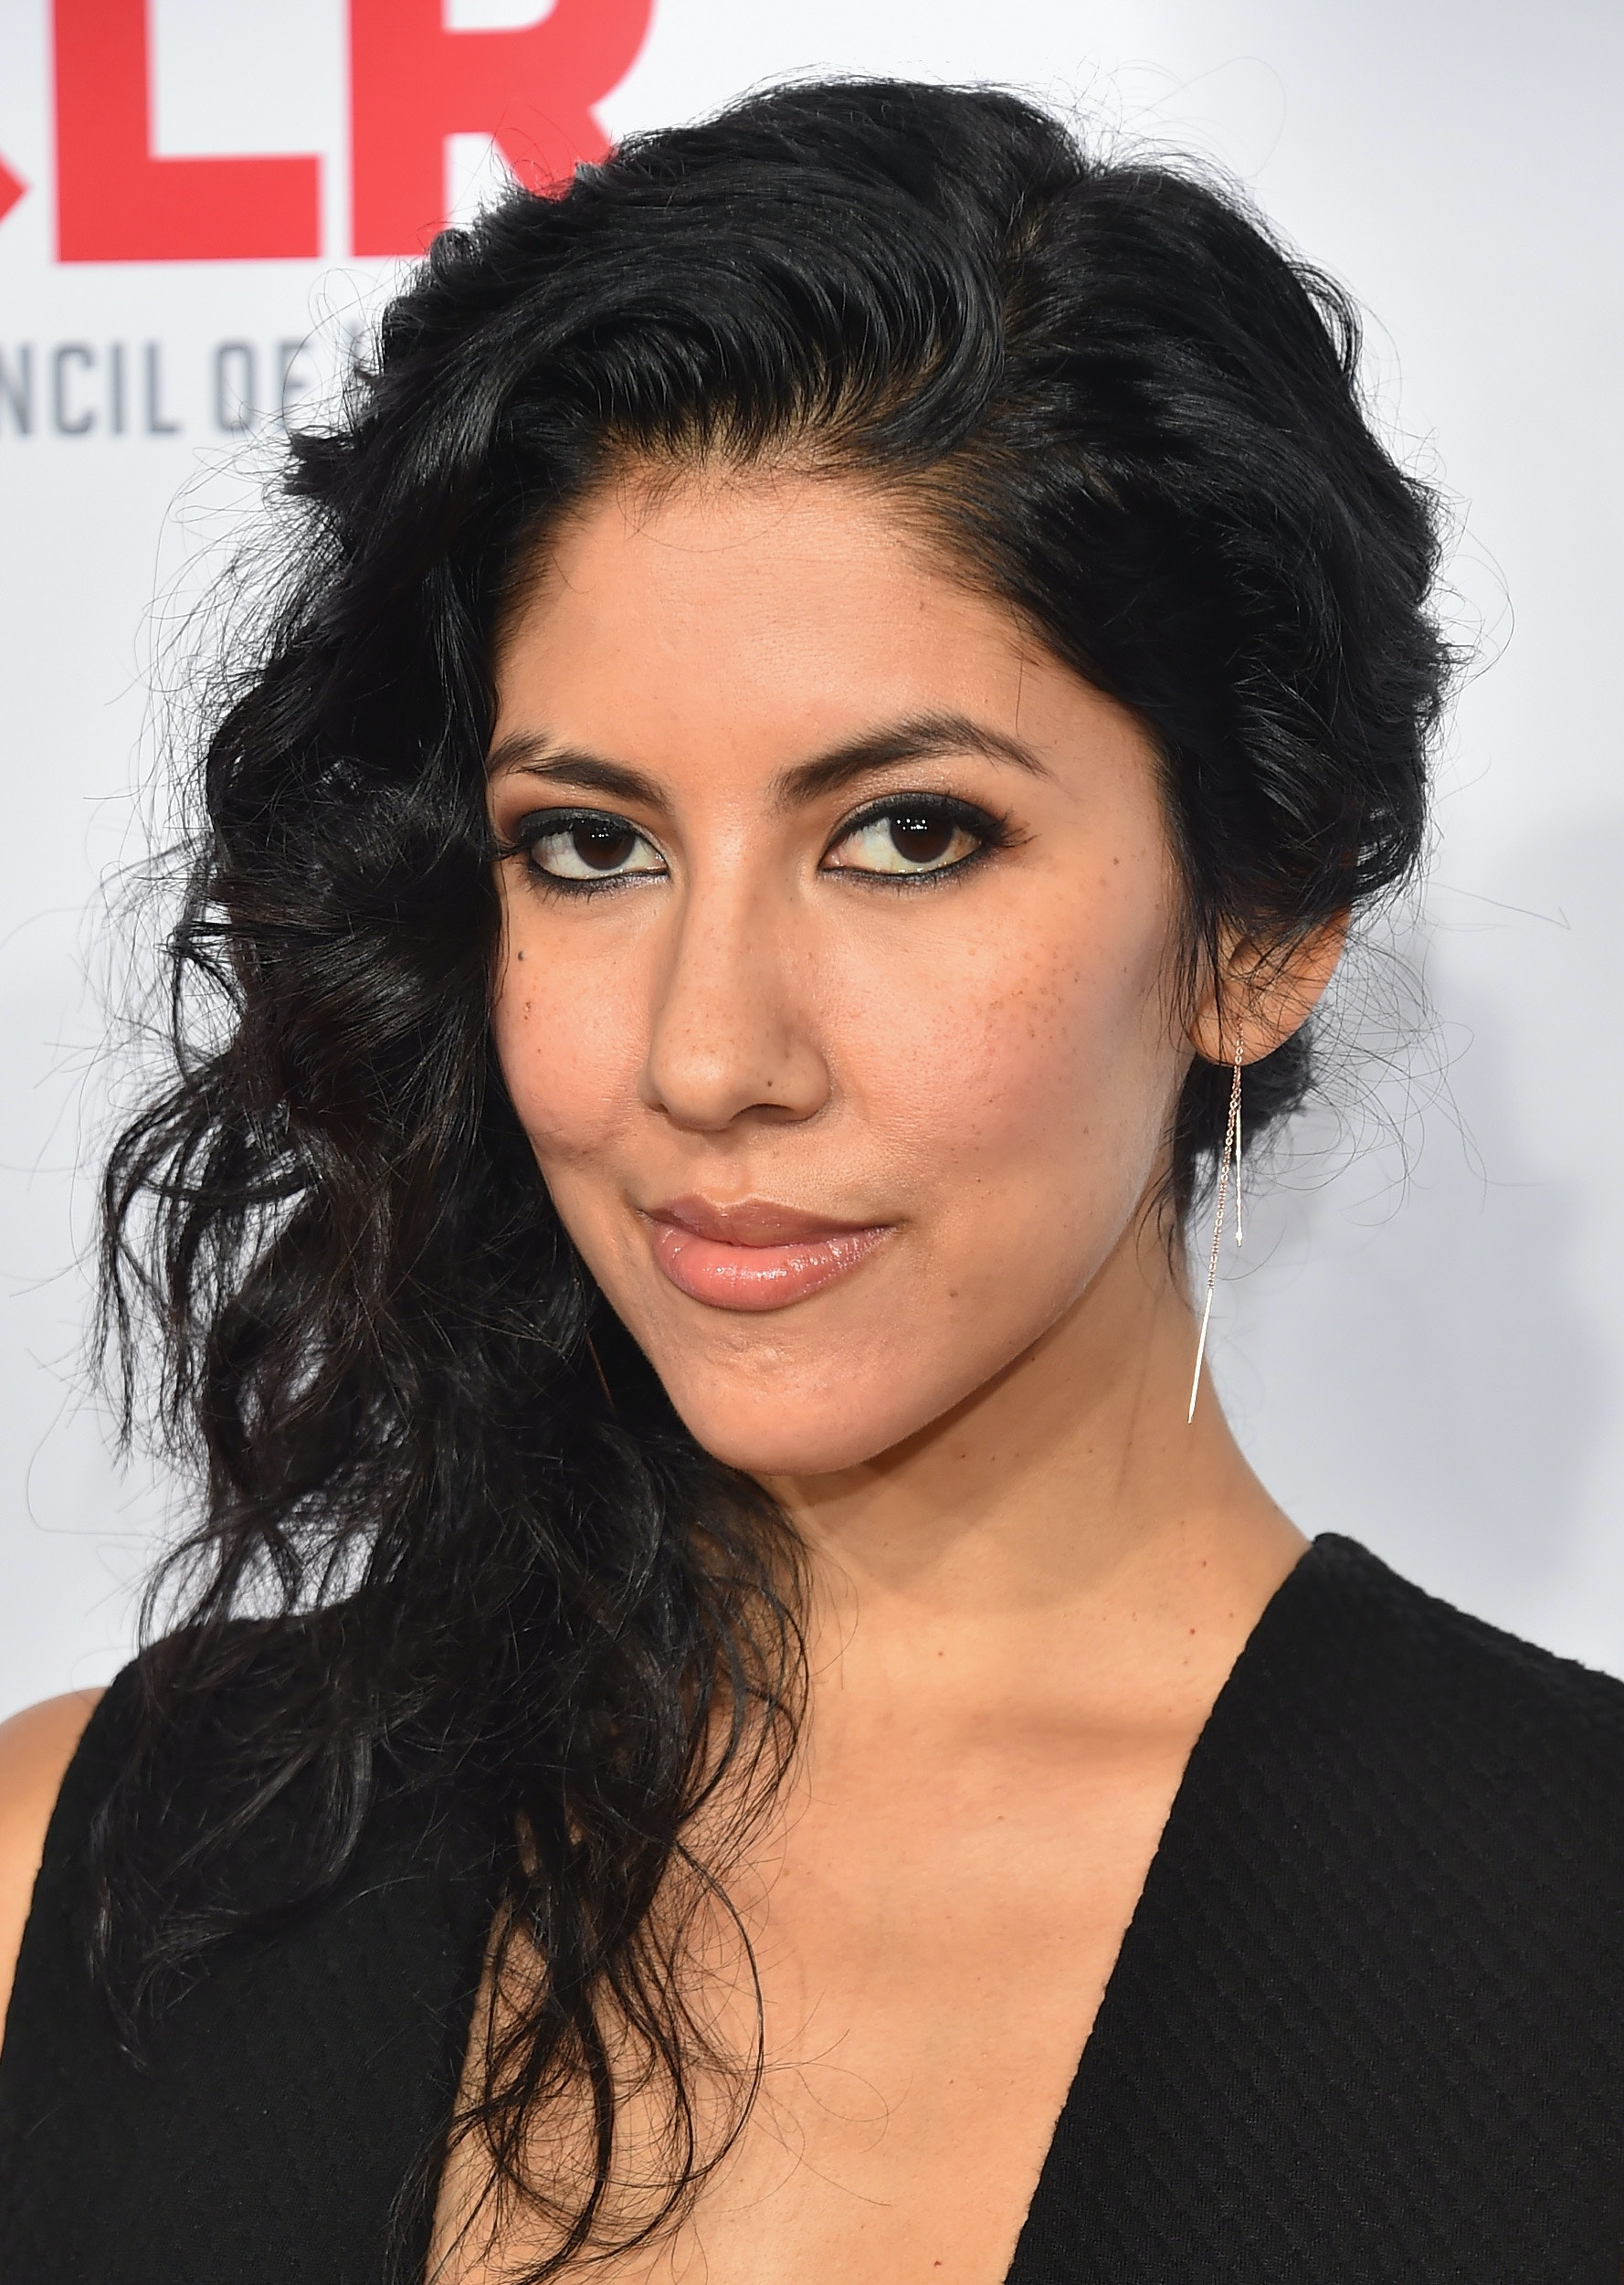 stephanie beatriz instagram